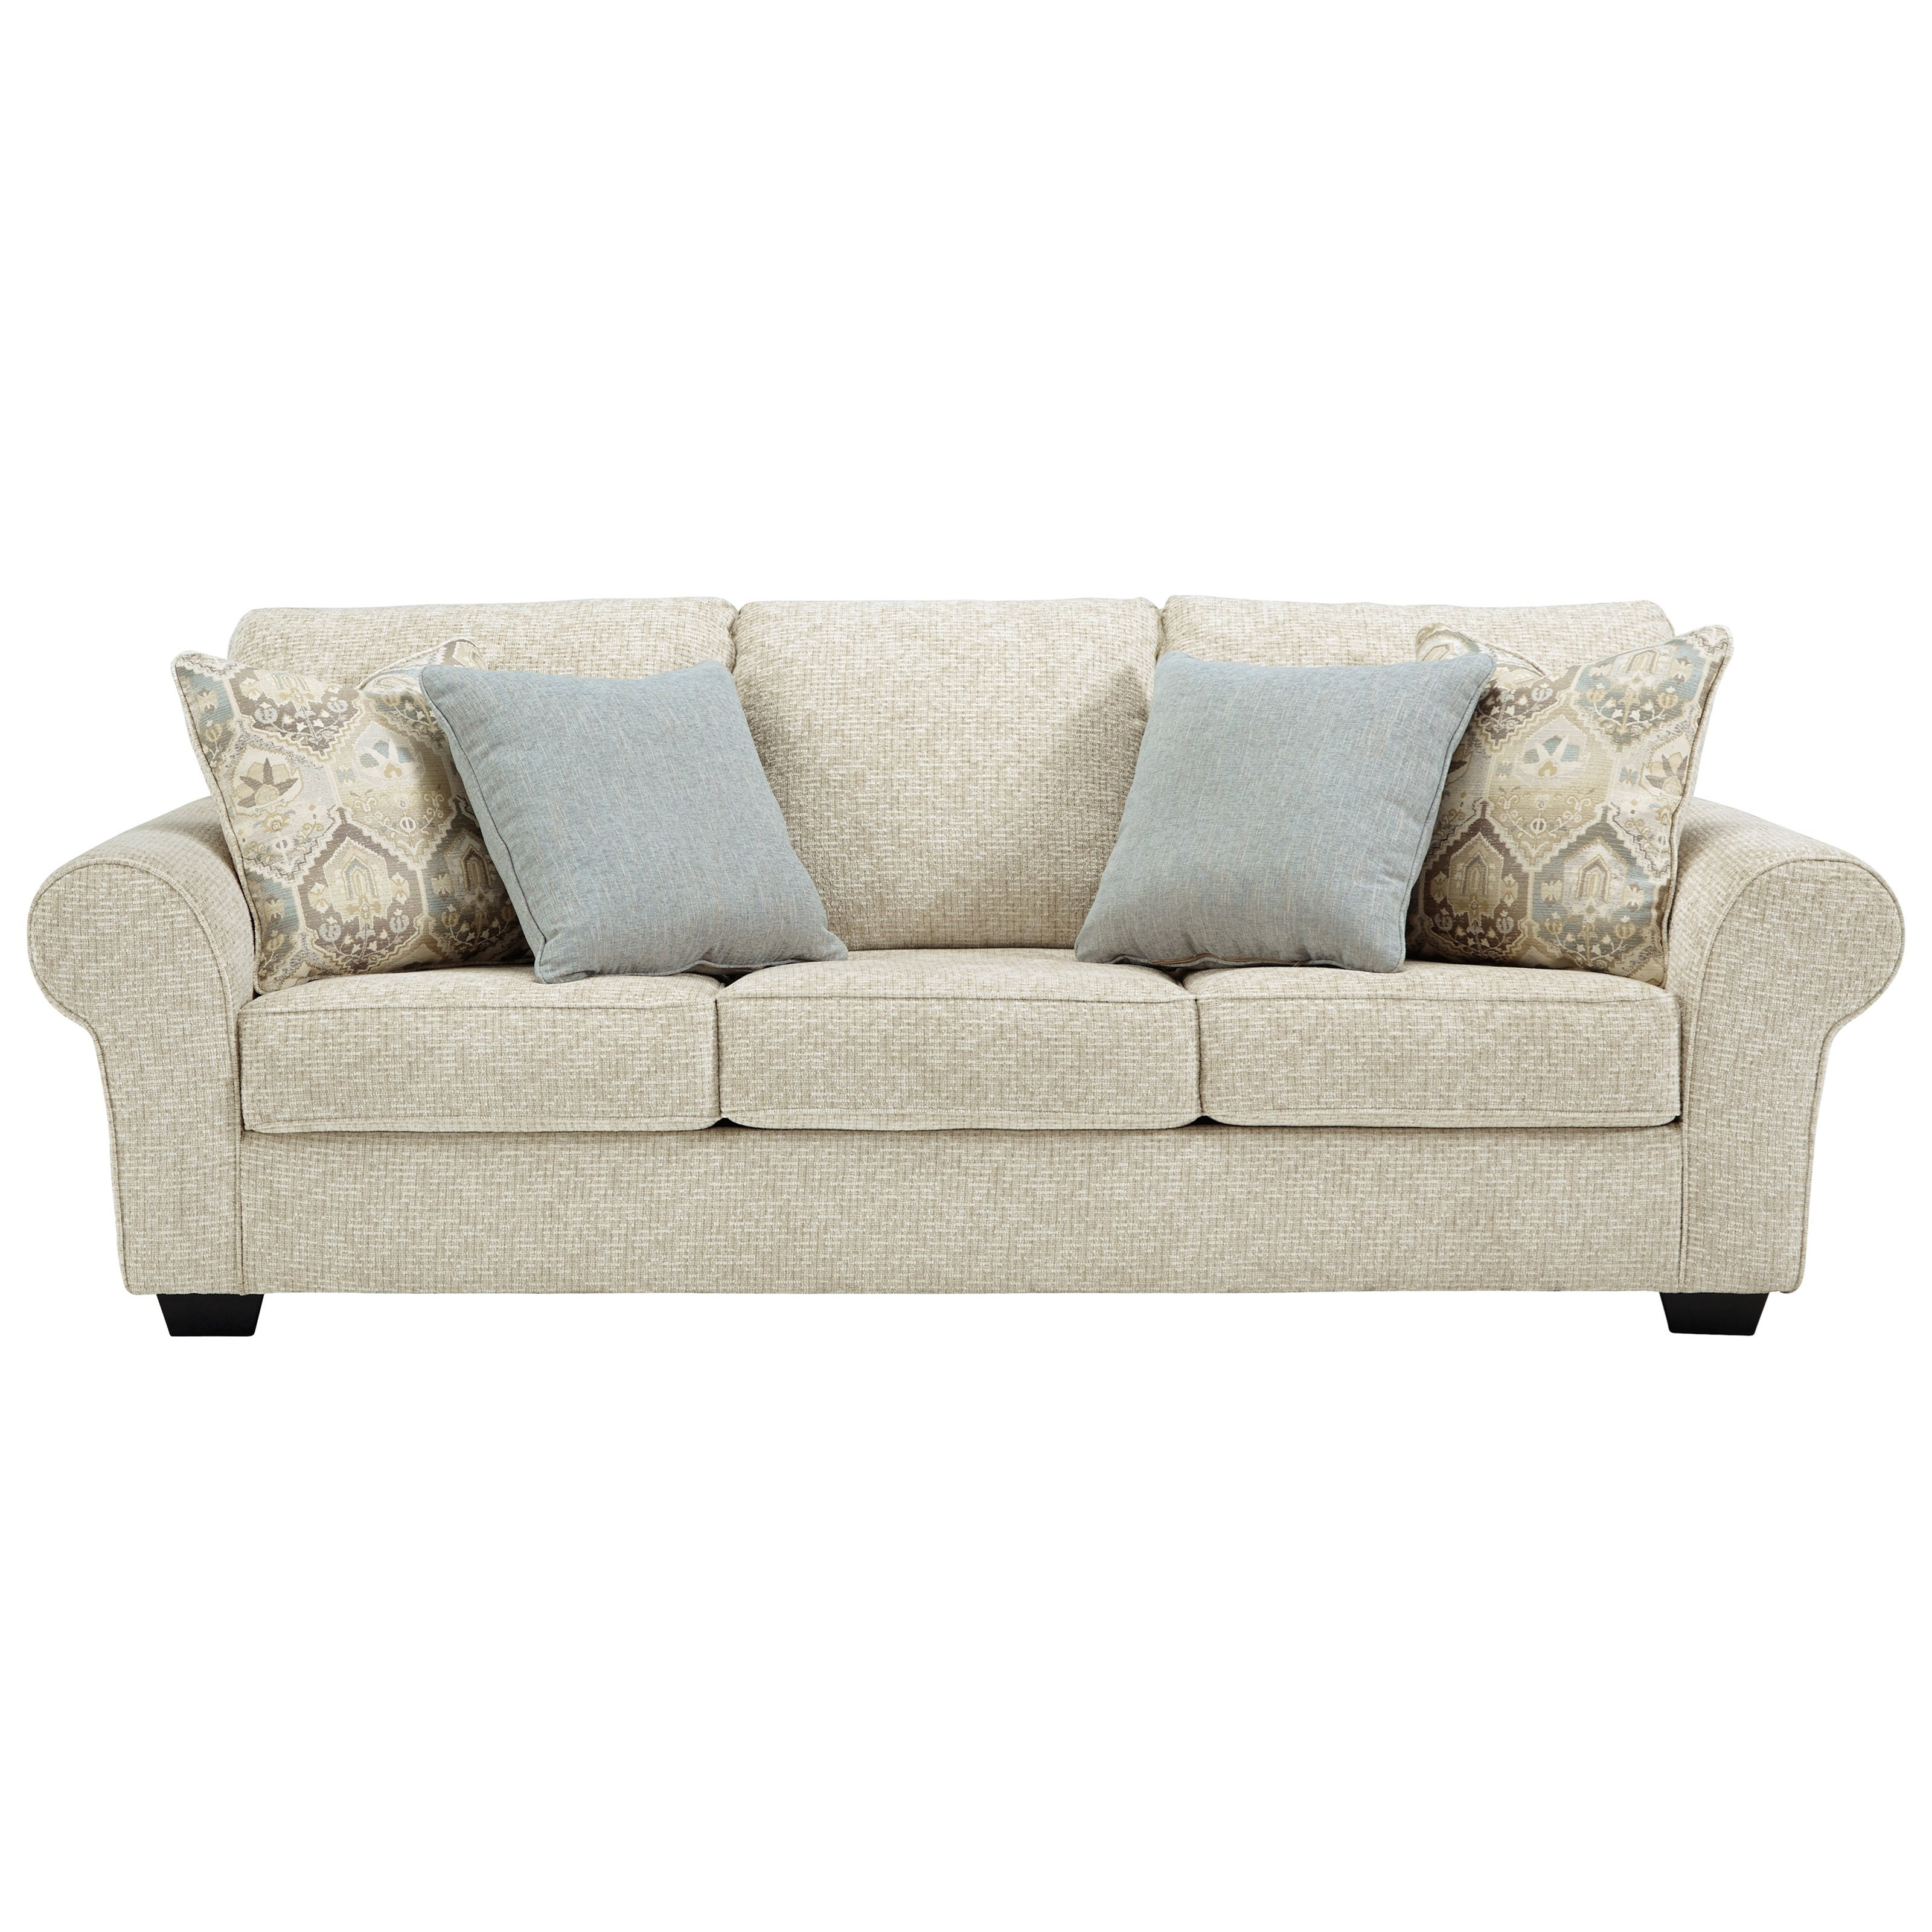 Haisley Sofa by Benchcraft at Beck's Furniture